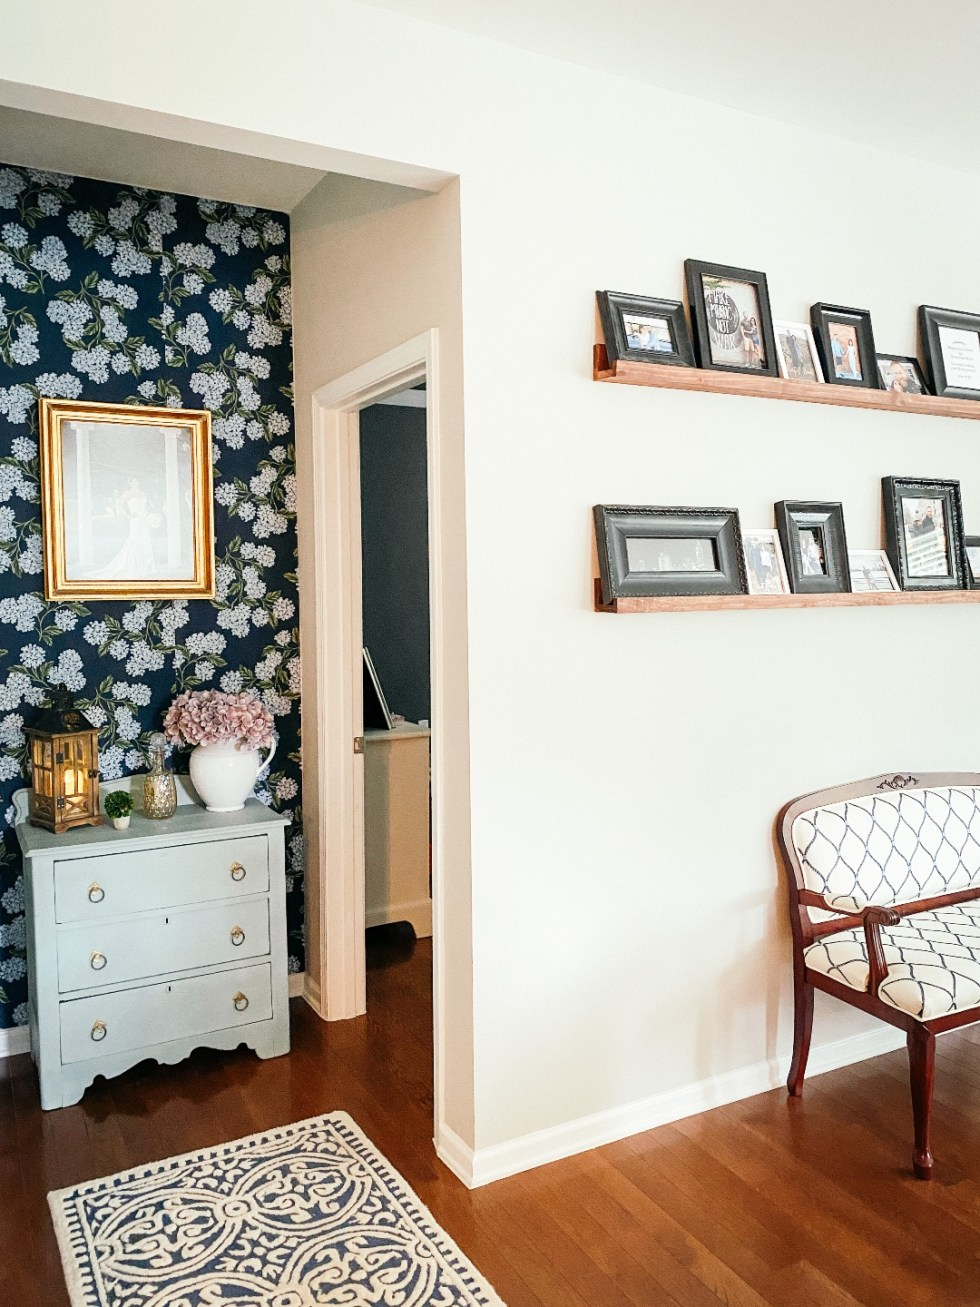 Room Reveal: Blue and Gray Living Room Ideas - I'm Fixin' To - @imfixintoblog | Blue and Grey Living Room Ideas by popular NC life and style blog, I'm Fixin' To: image of a living room decorated with a blue and white rug runner, floating wood shelves with black picture frames, white pillar candles, wooden picnic basket, blue and white floral wallpaper, blue and white armchair, and light blue dresser.